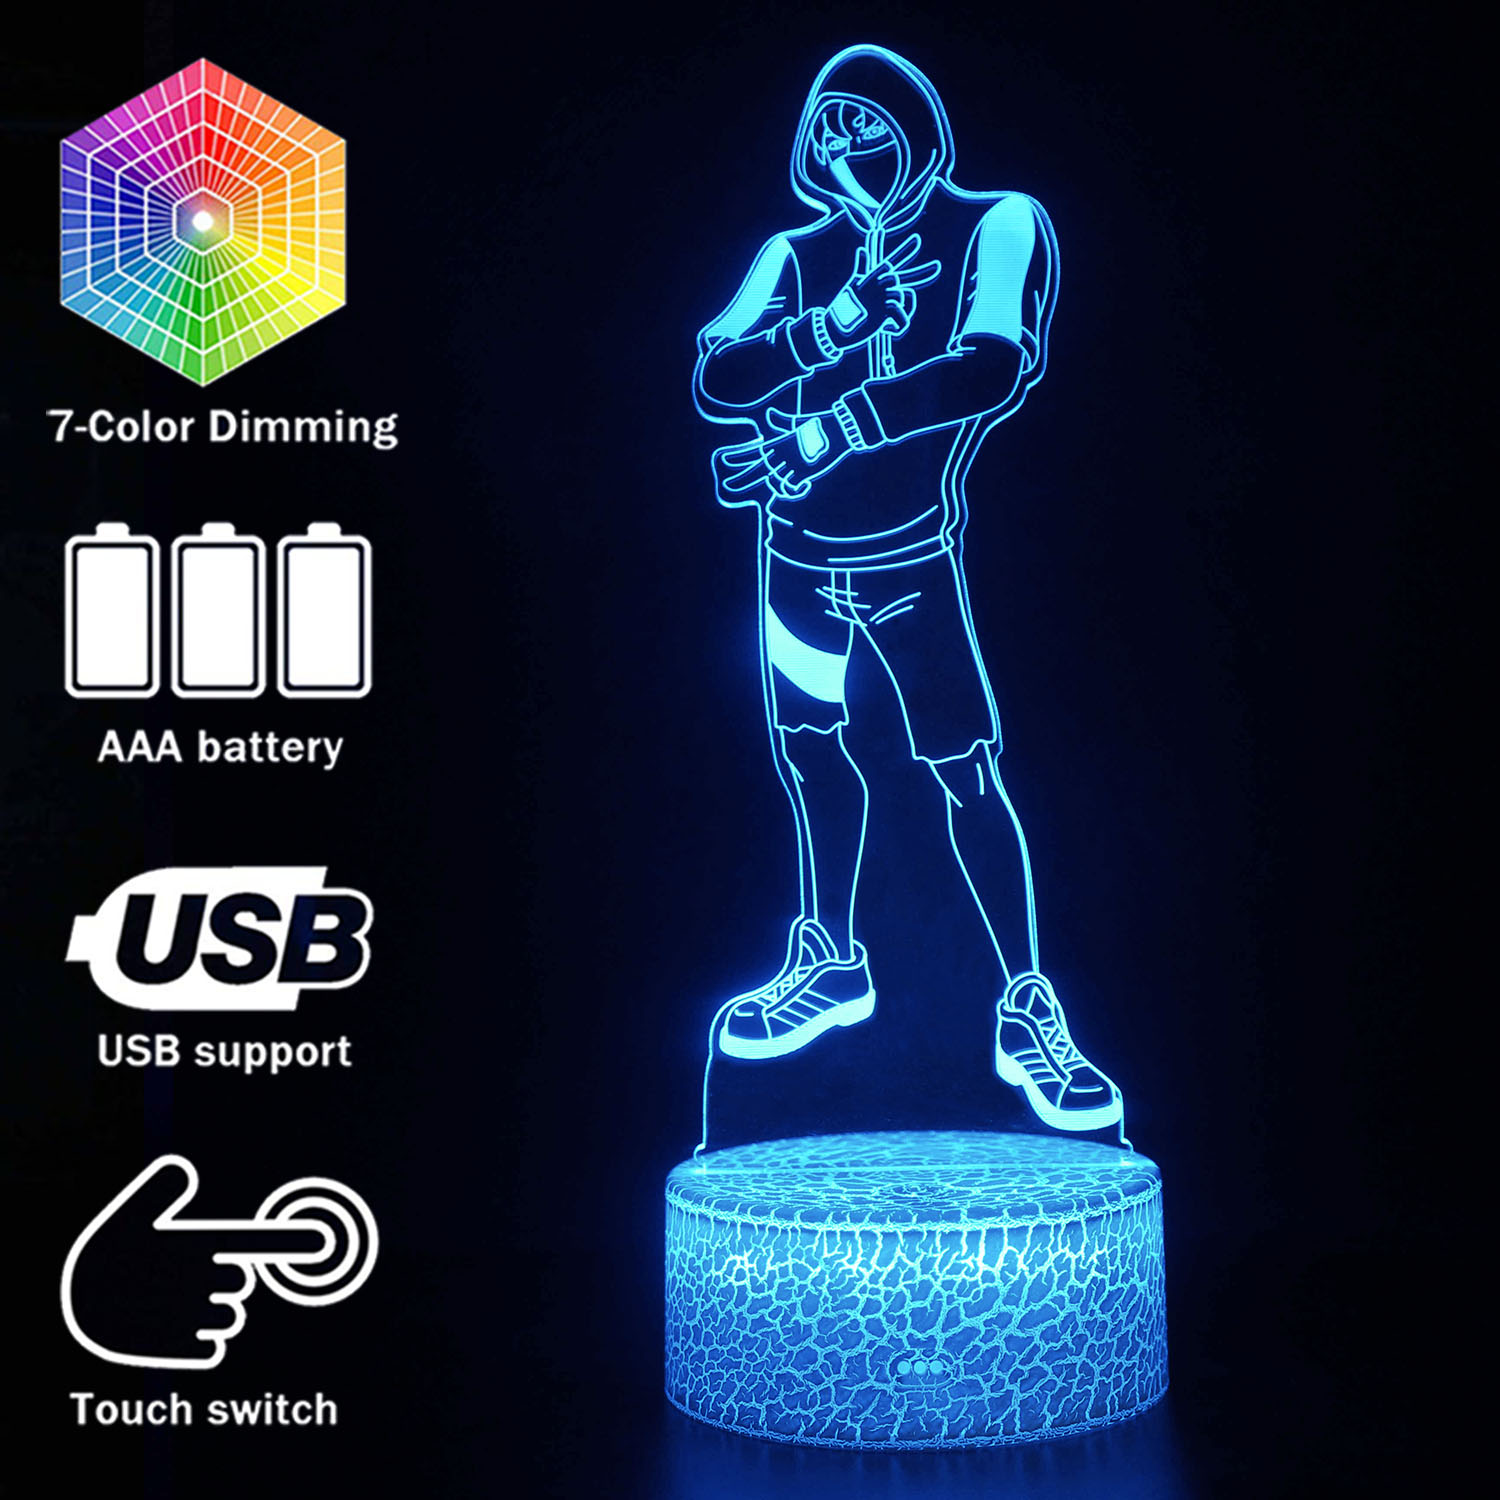 Fortress Night Season 8 Ikonik Skin Model 3D Illusion Lamp Battle Royale Decoration Night Lights  Ikonik Figurine Table Lamps